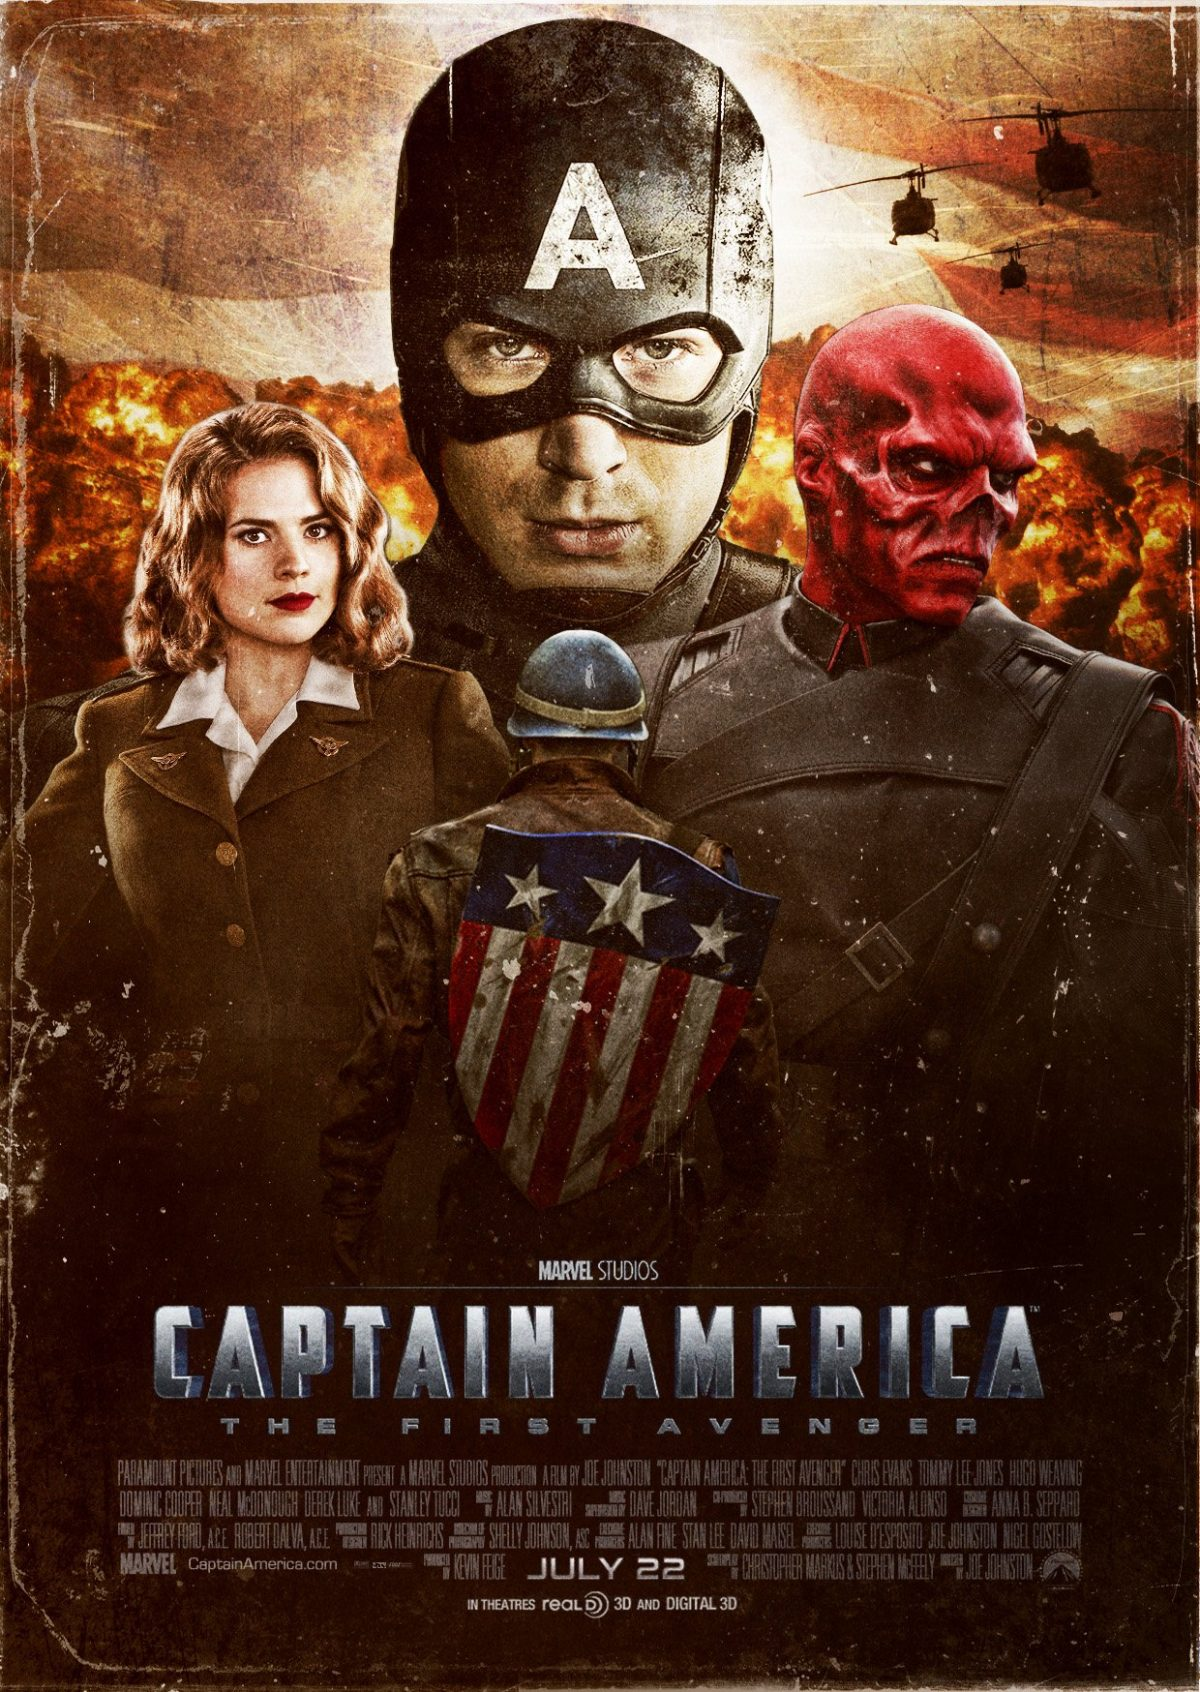 Captain America The First Avenger | กัปตันอเมริกา อเวนเจอร์ที่ 1 (2011)